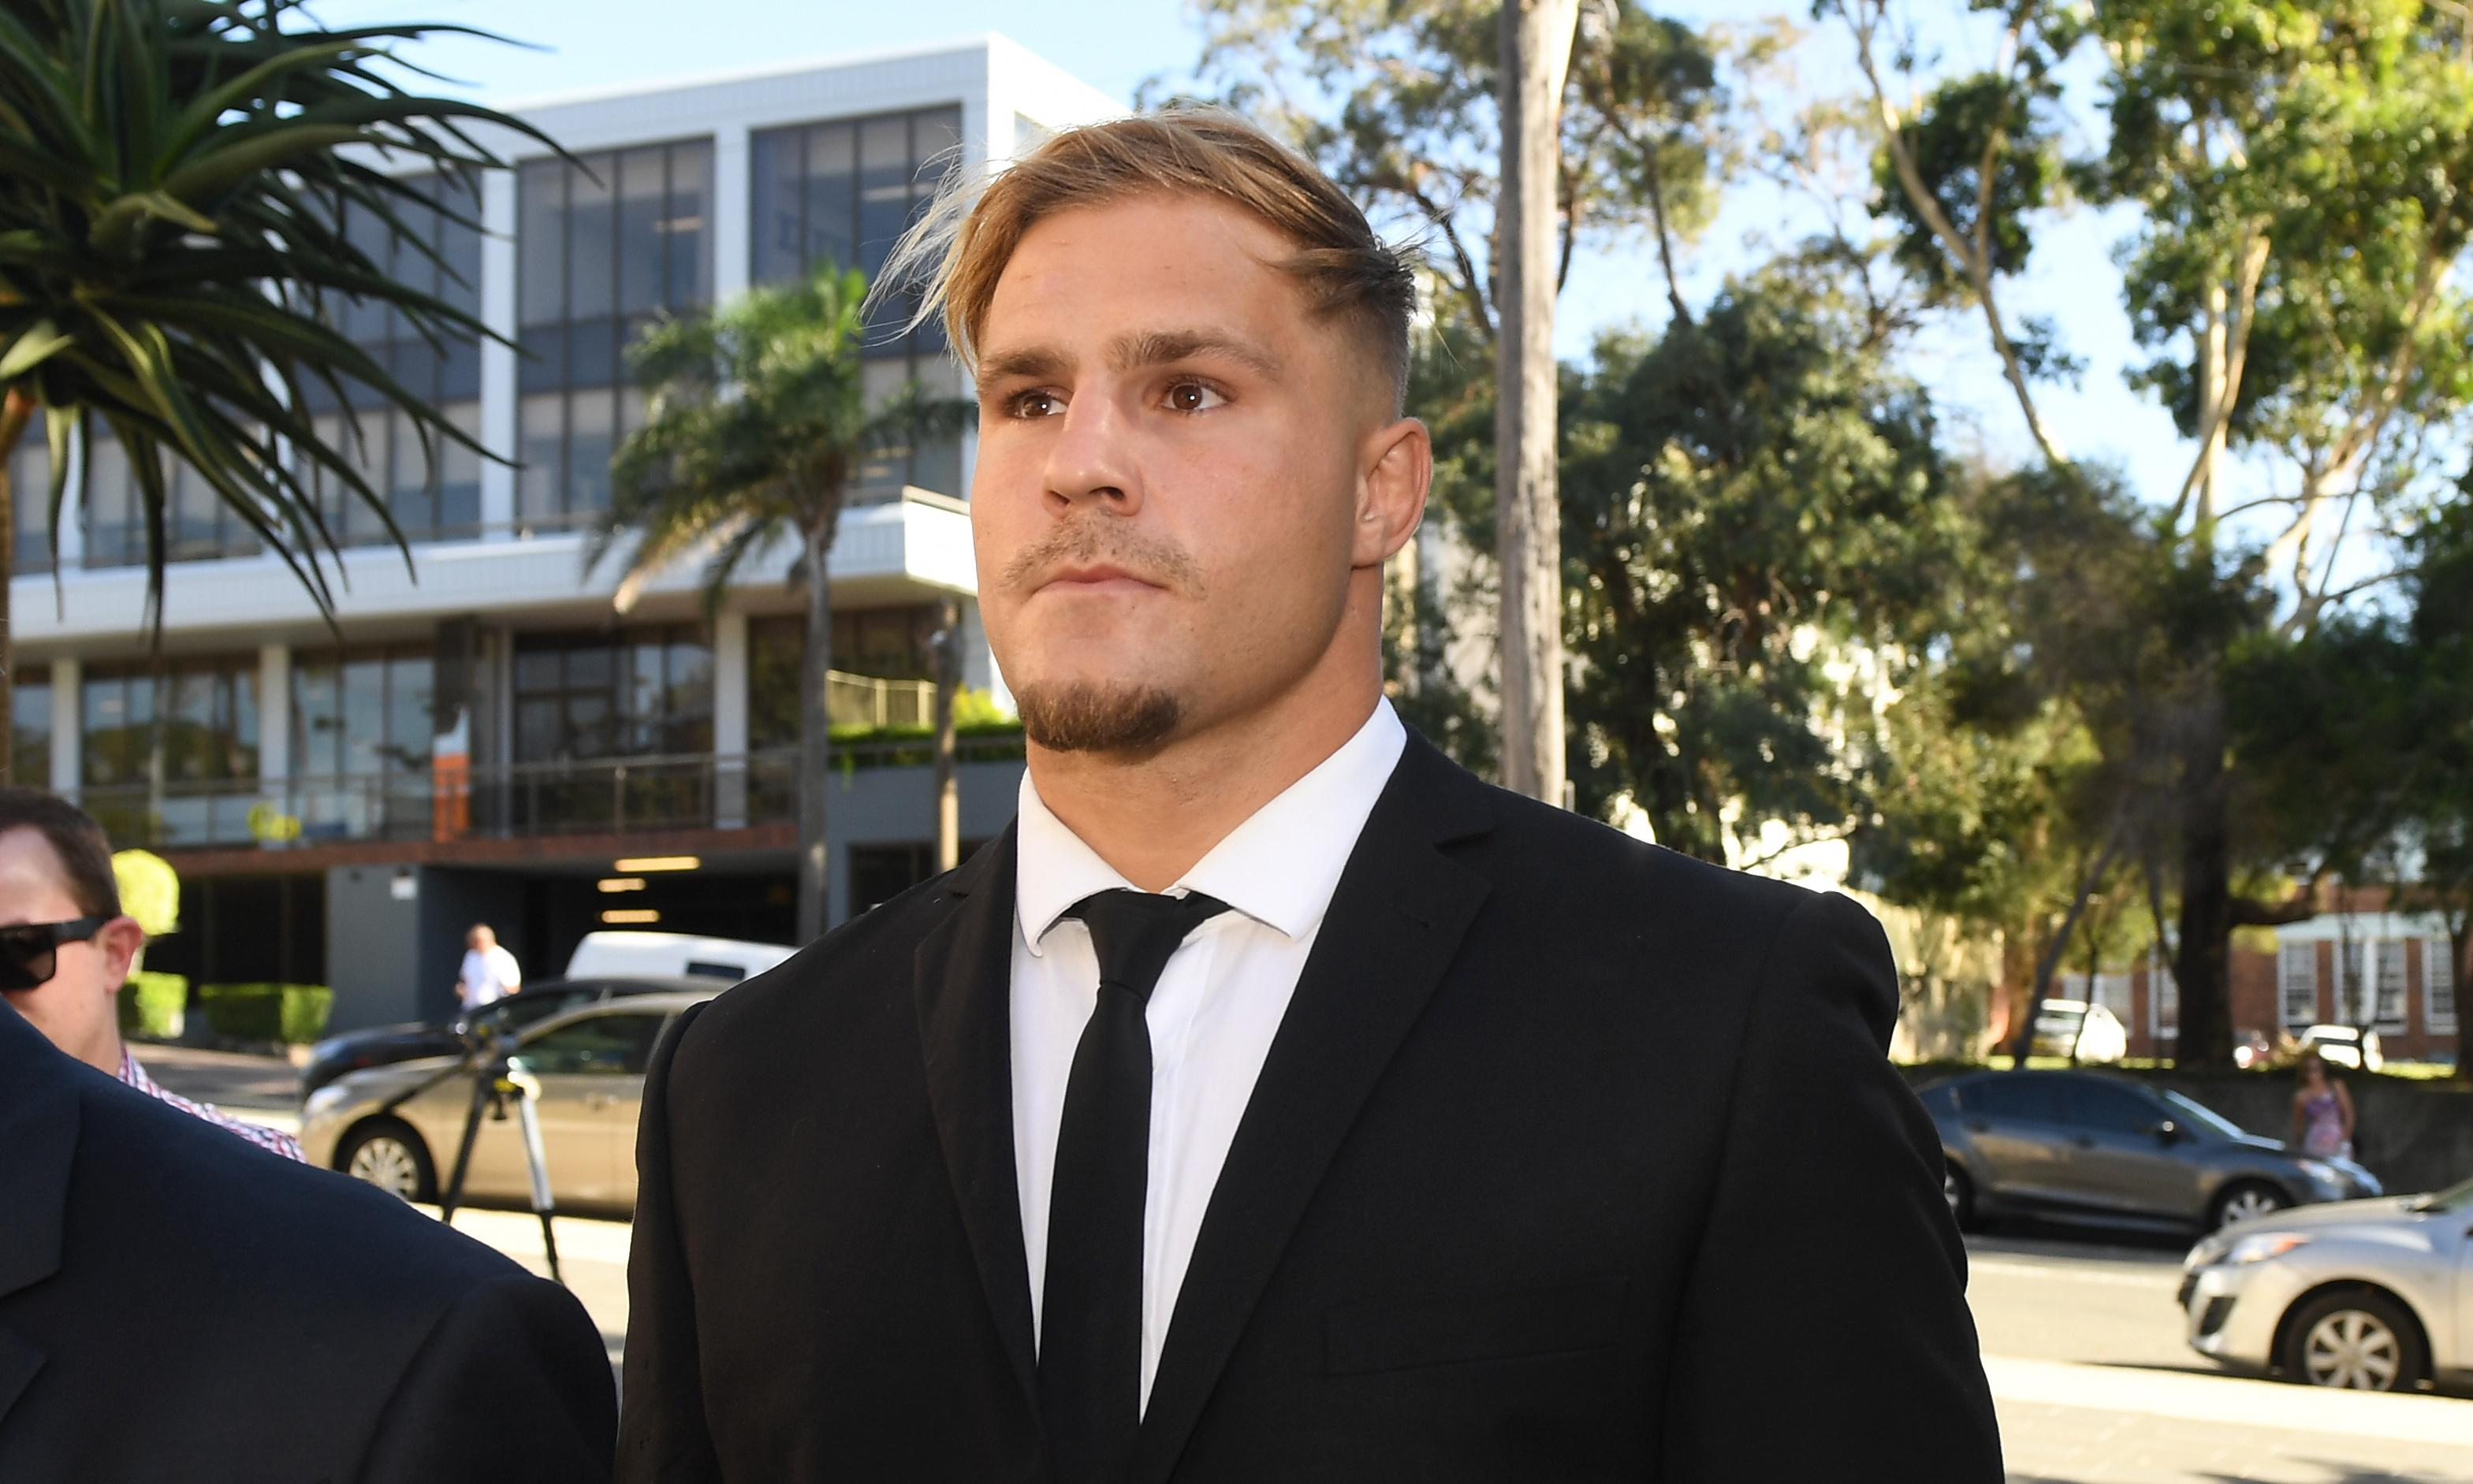 Jack de Belin loses federal court bid to be reinstated by NRL